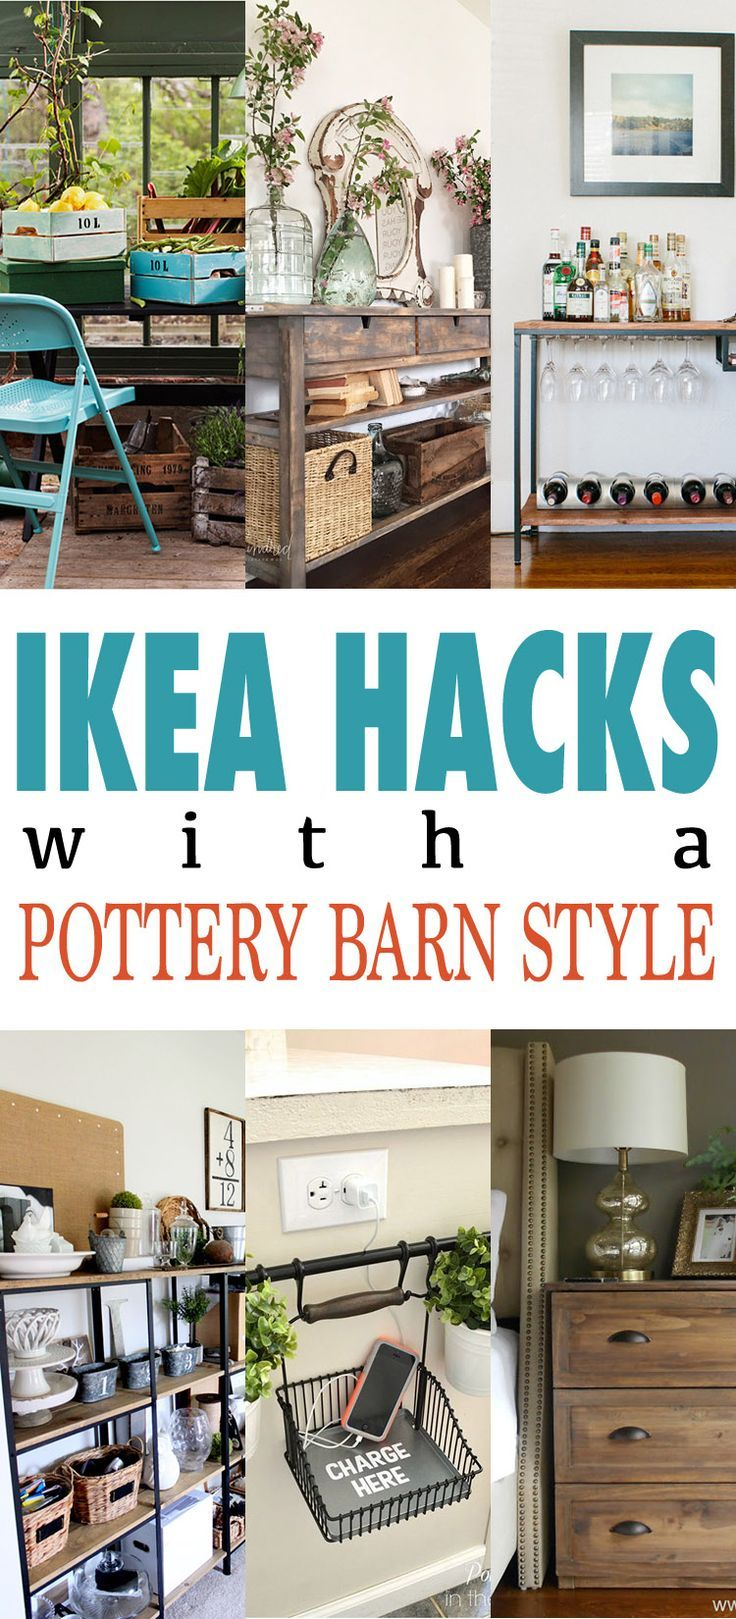 ikea hacks with a pottery barn style the cottage market. Black Bedroom Furniture Sets. Home Design Ideas